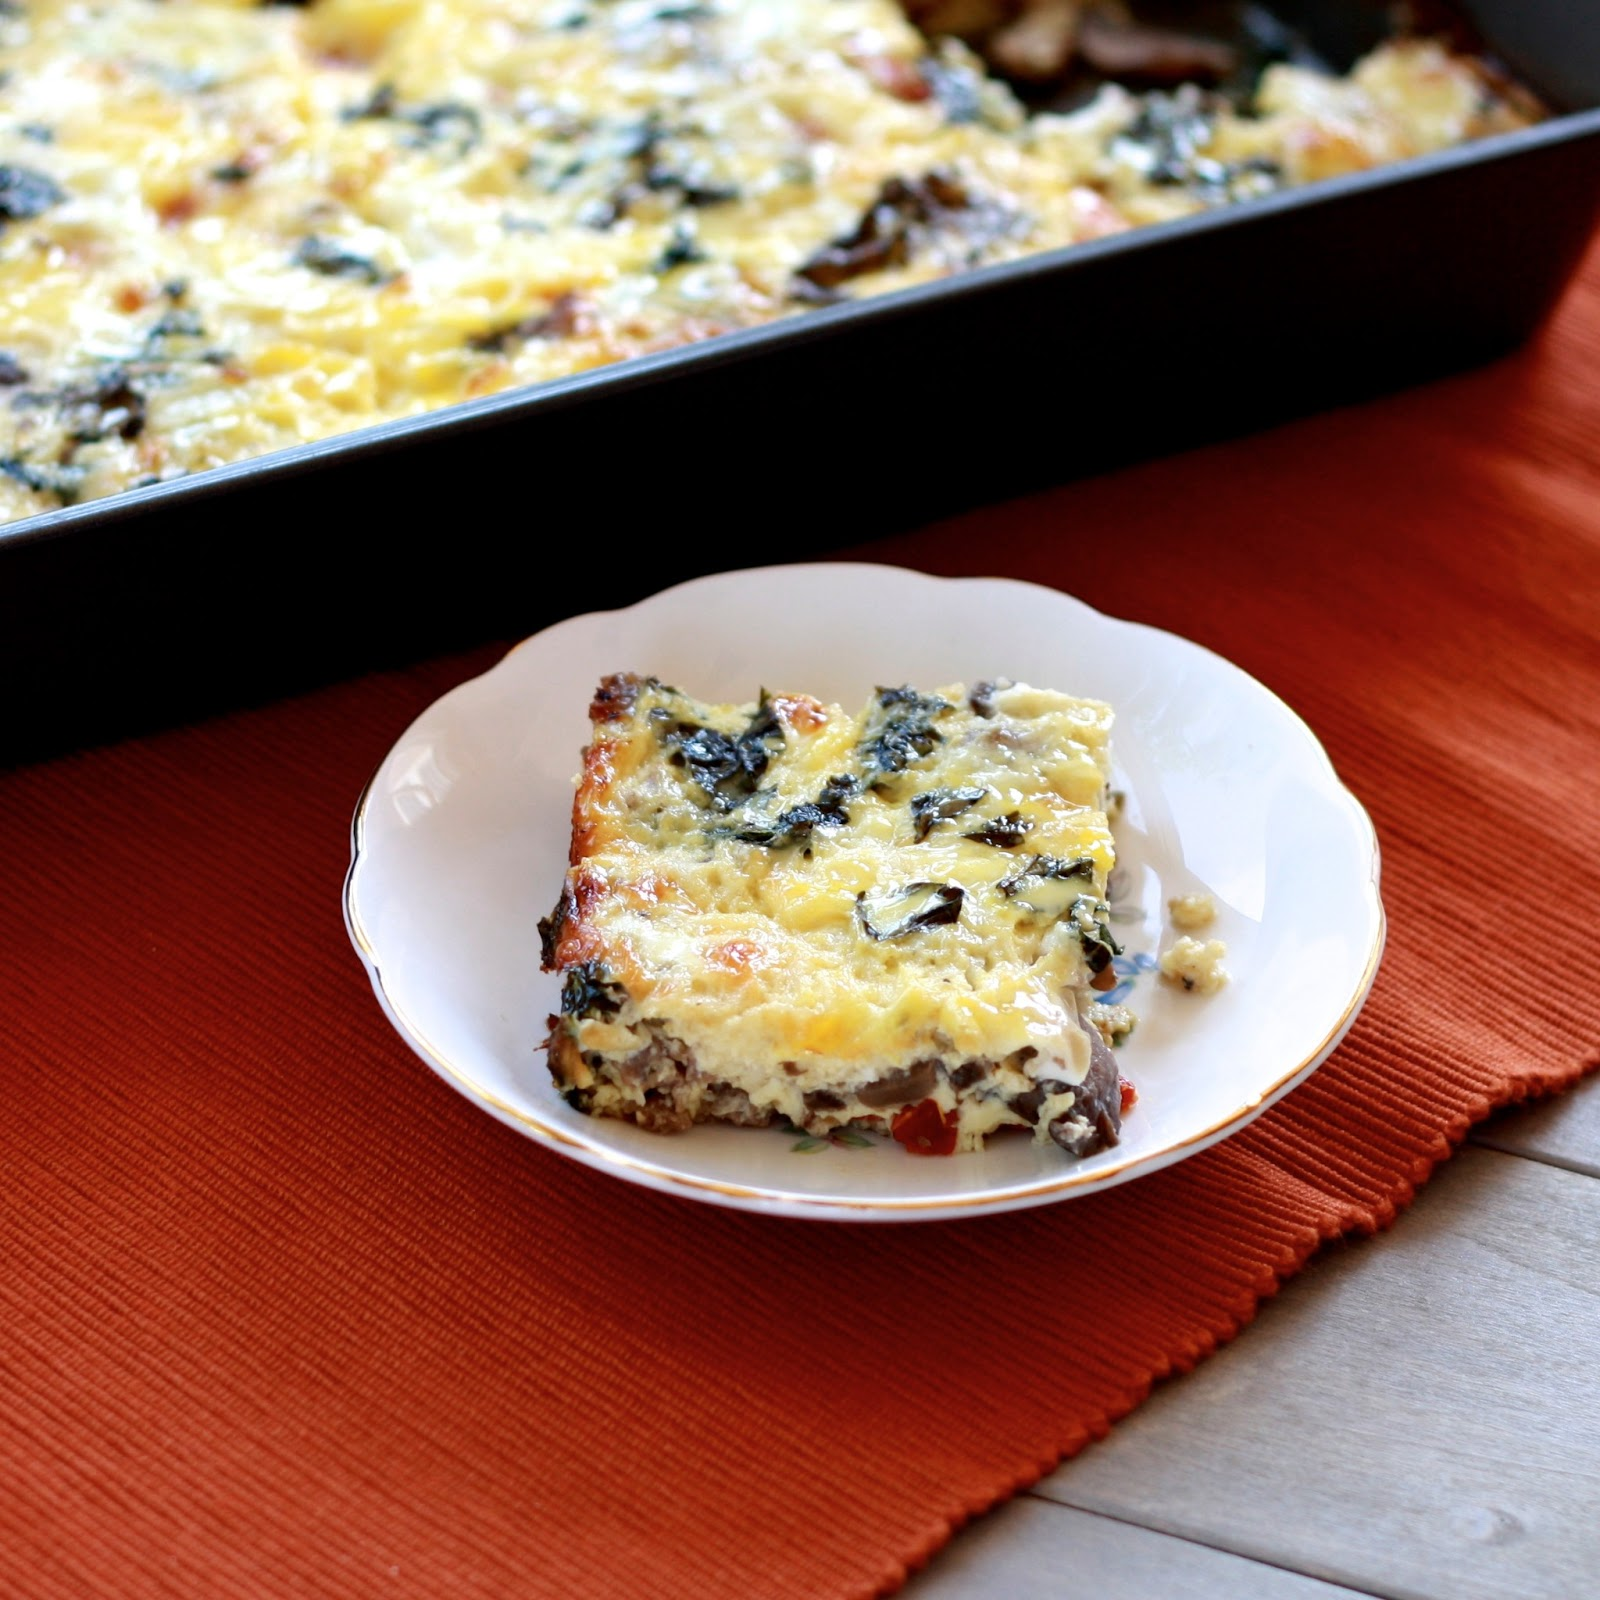 Do Ahead Egg And Sausage Bake: Sausage And Egg Casserole With Mushrooms, Sun-dried